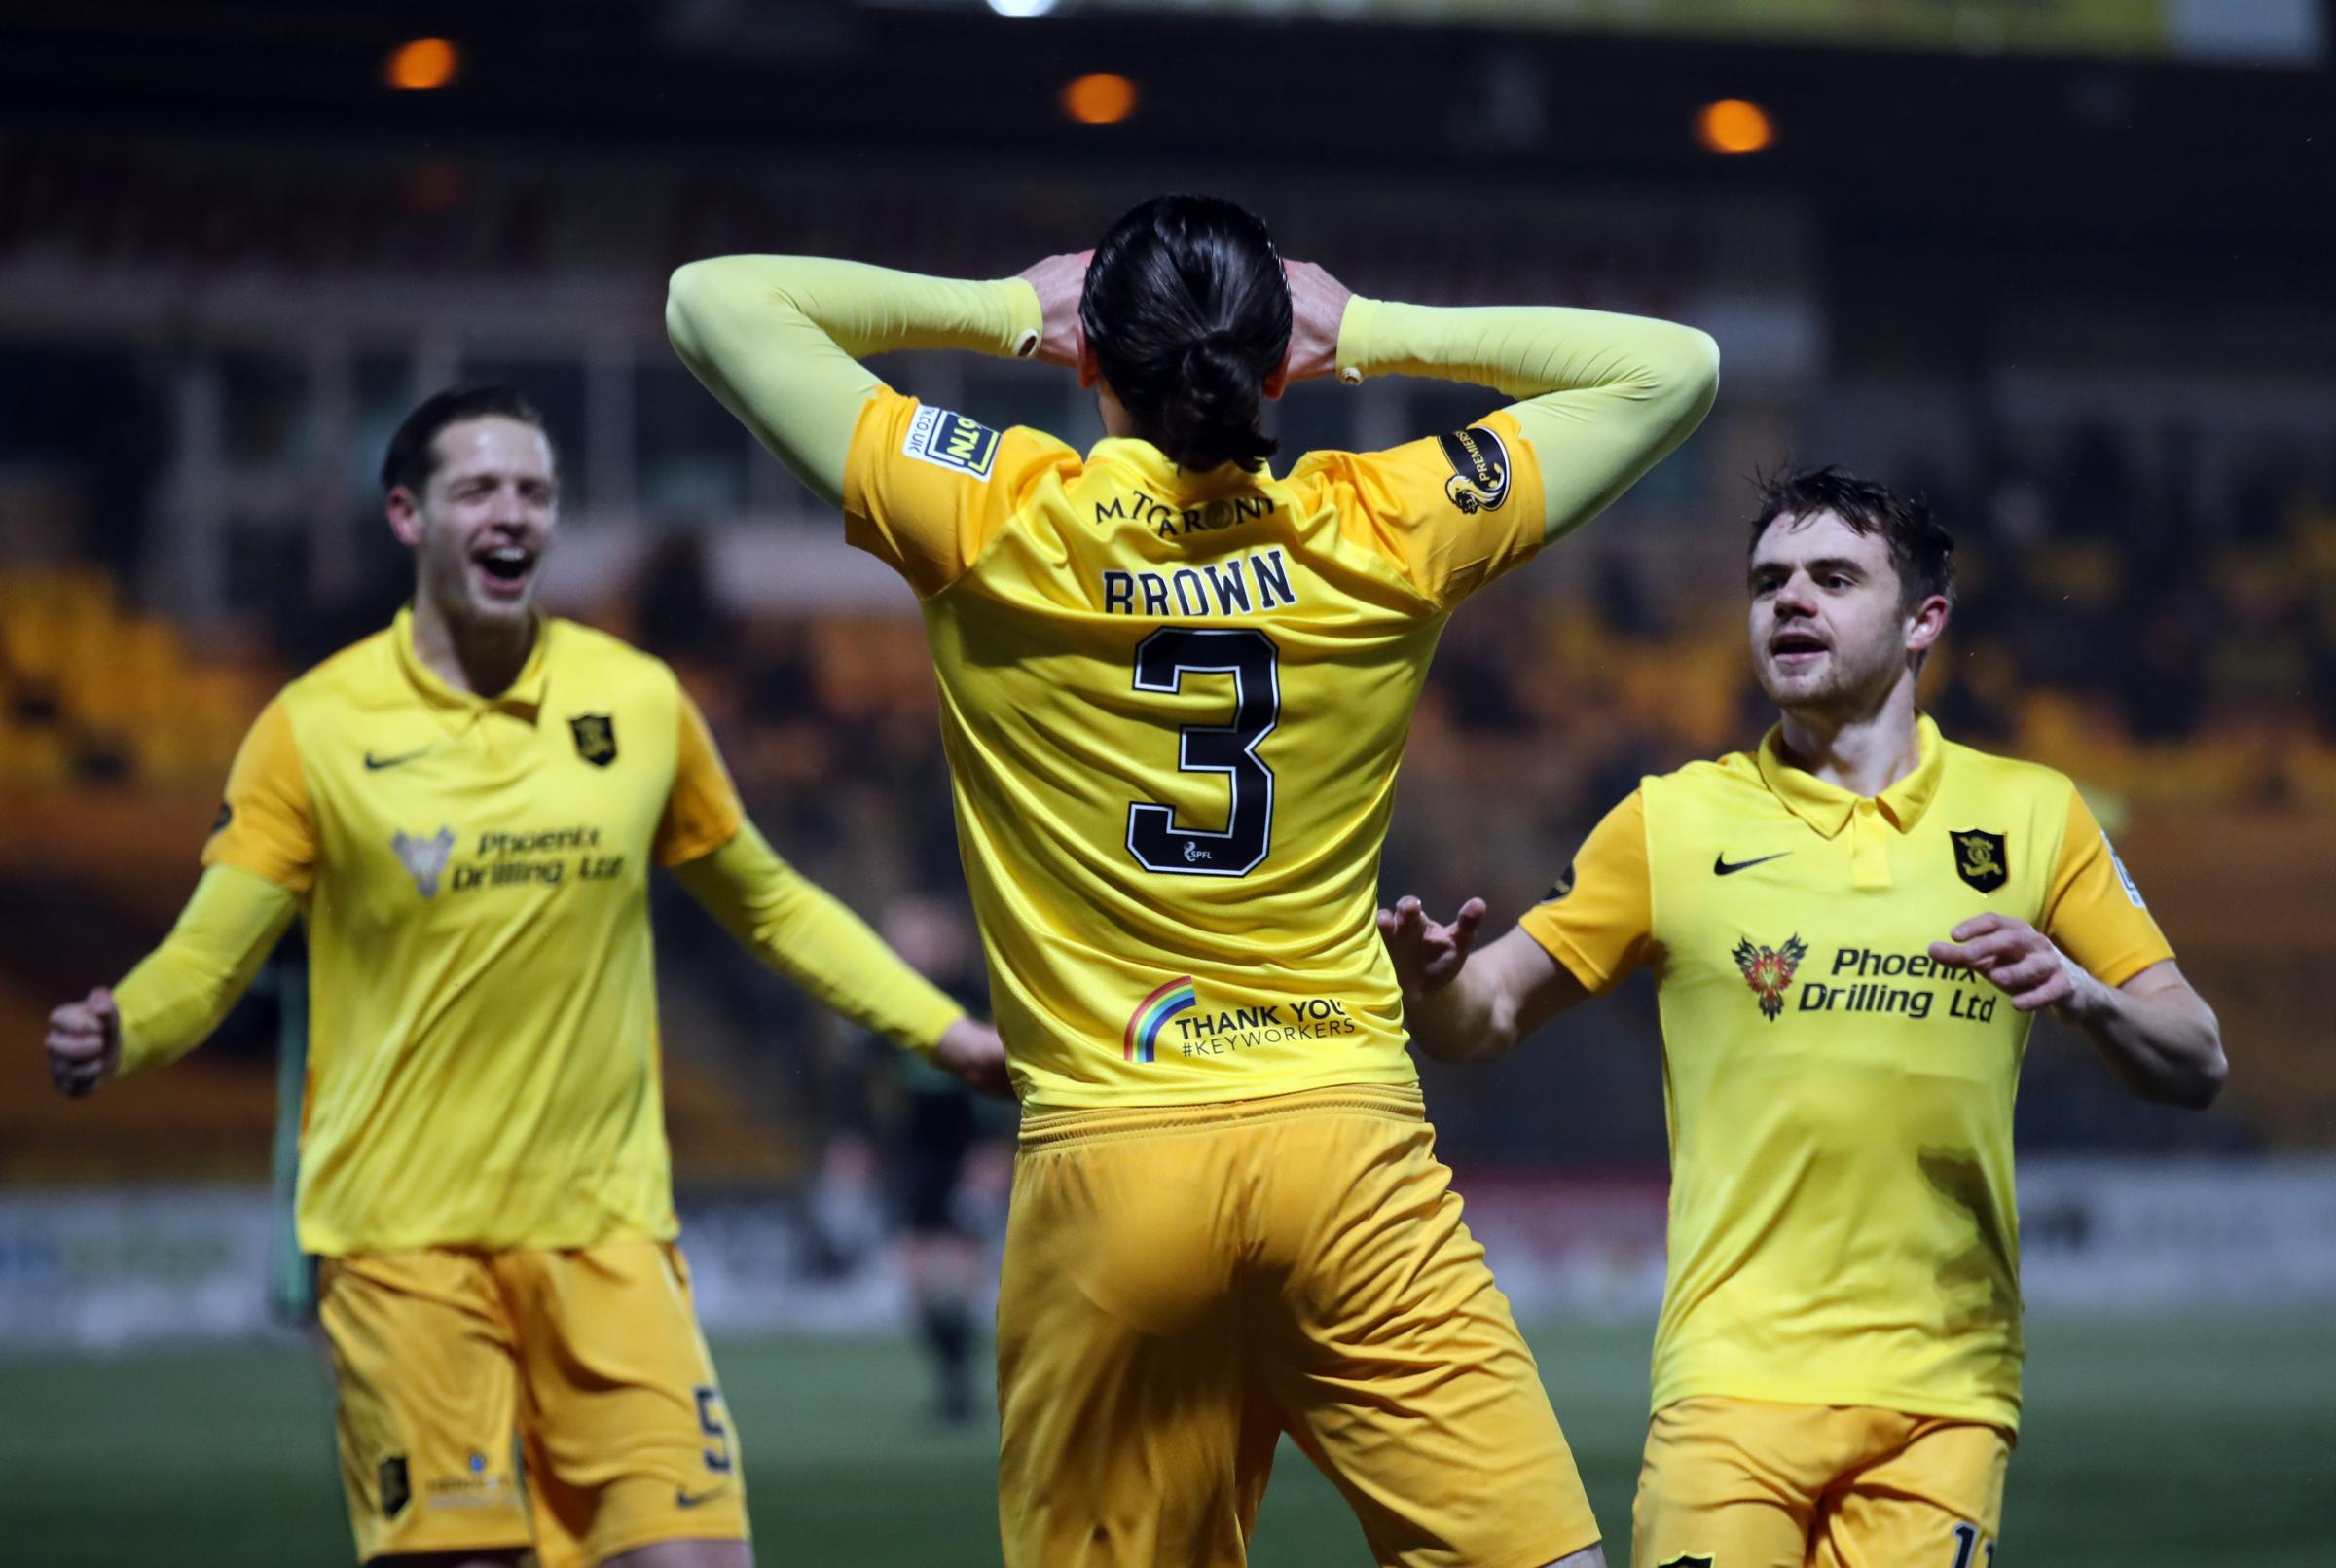 Livingston troll Celtic in 'historic 10 in a row' post after sealing impressive point against holders